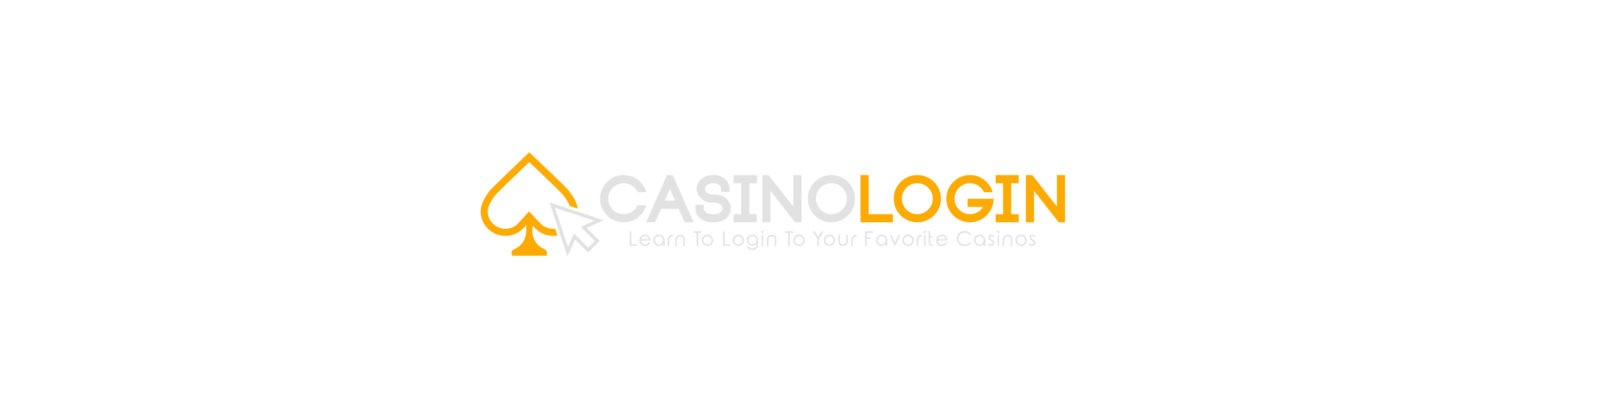 casinologin